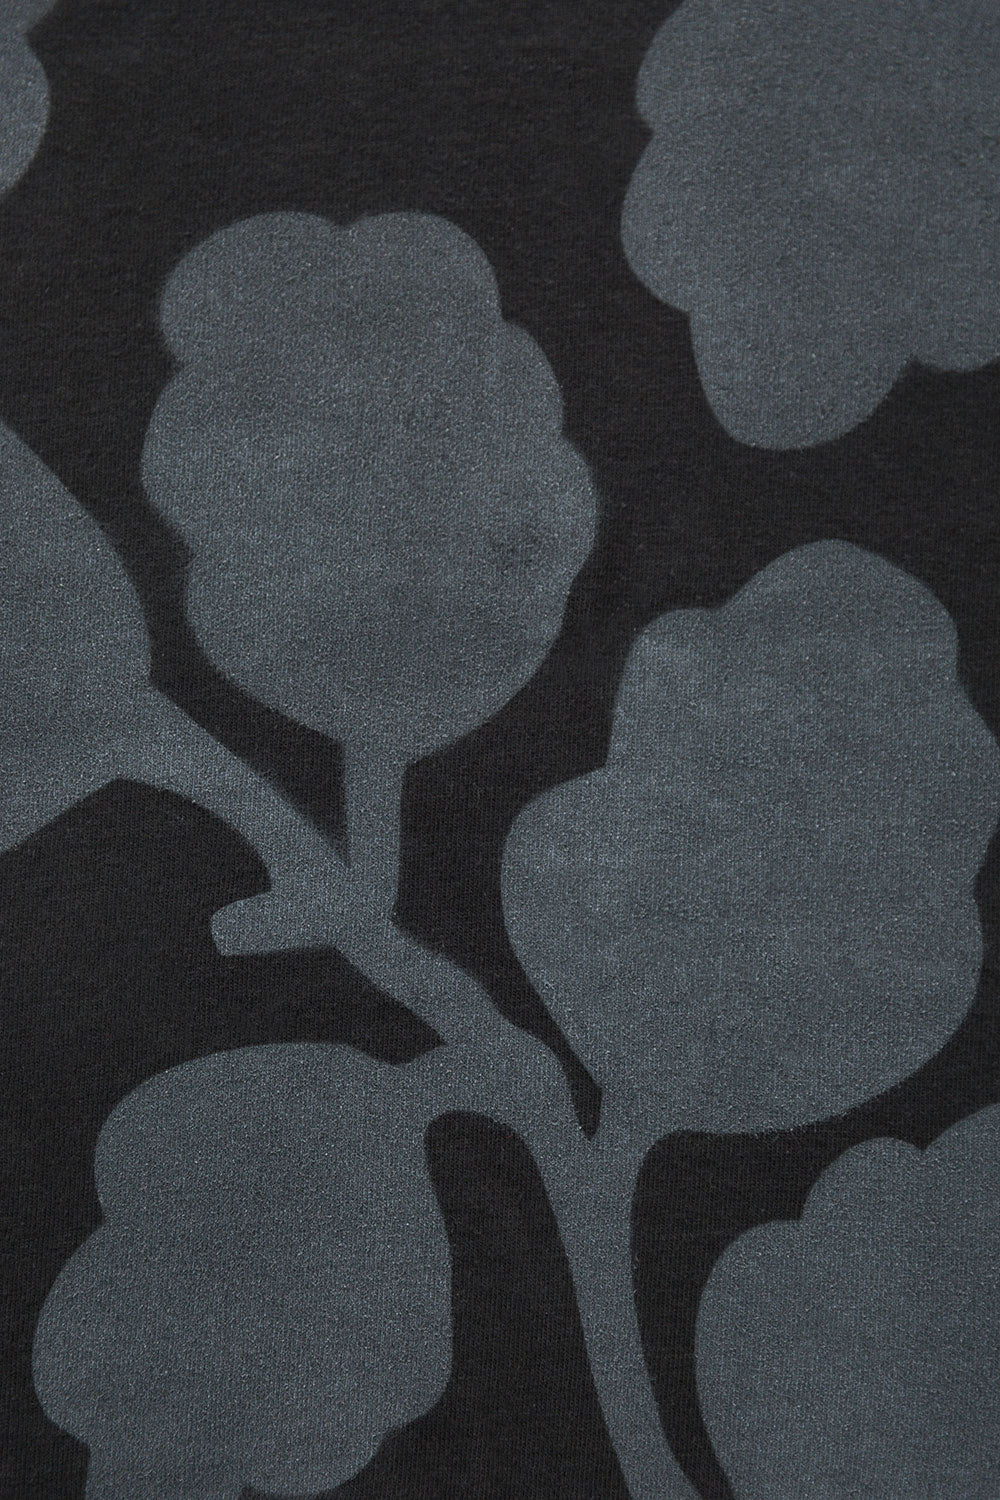 The School of Making New Leaves Stencil Design Floral Pattern Hand-Painted Design in Black and Tonal Paint